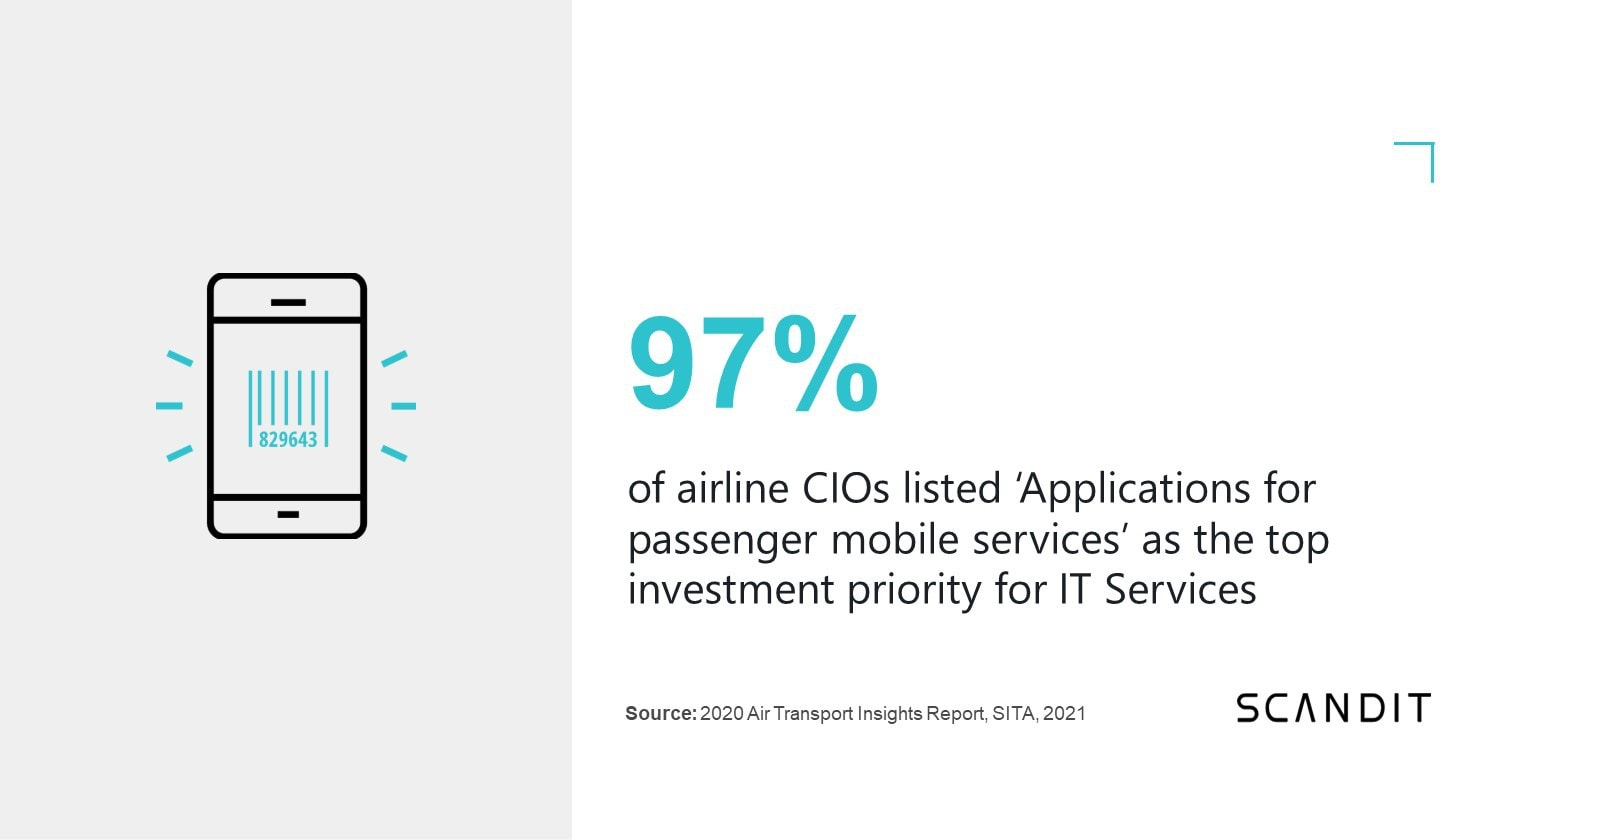 Airline IT investment priority